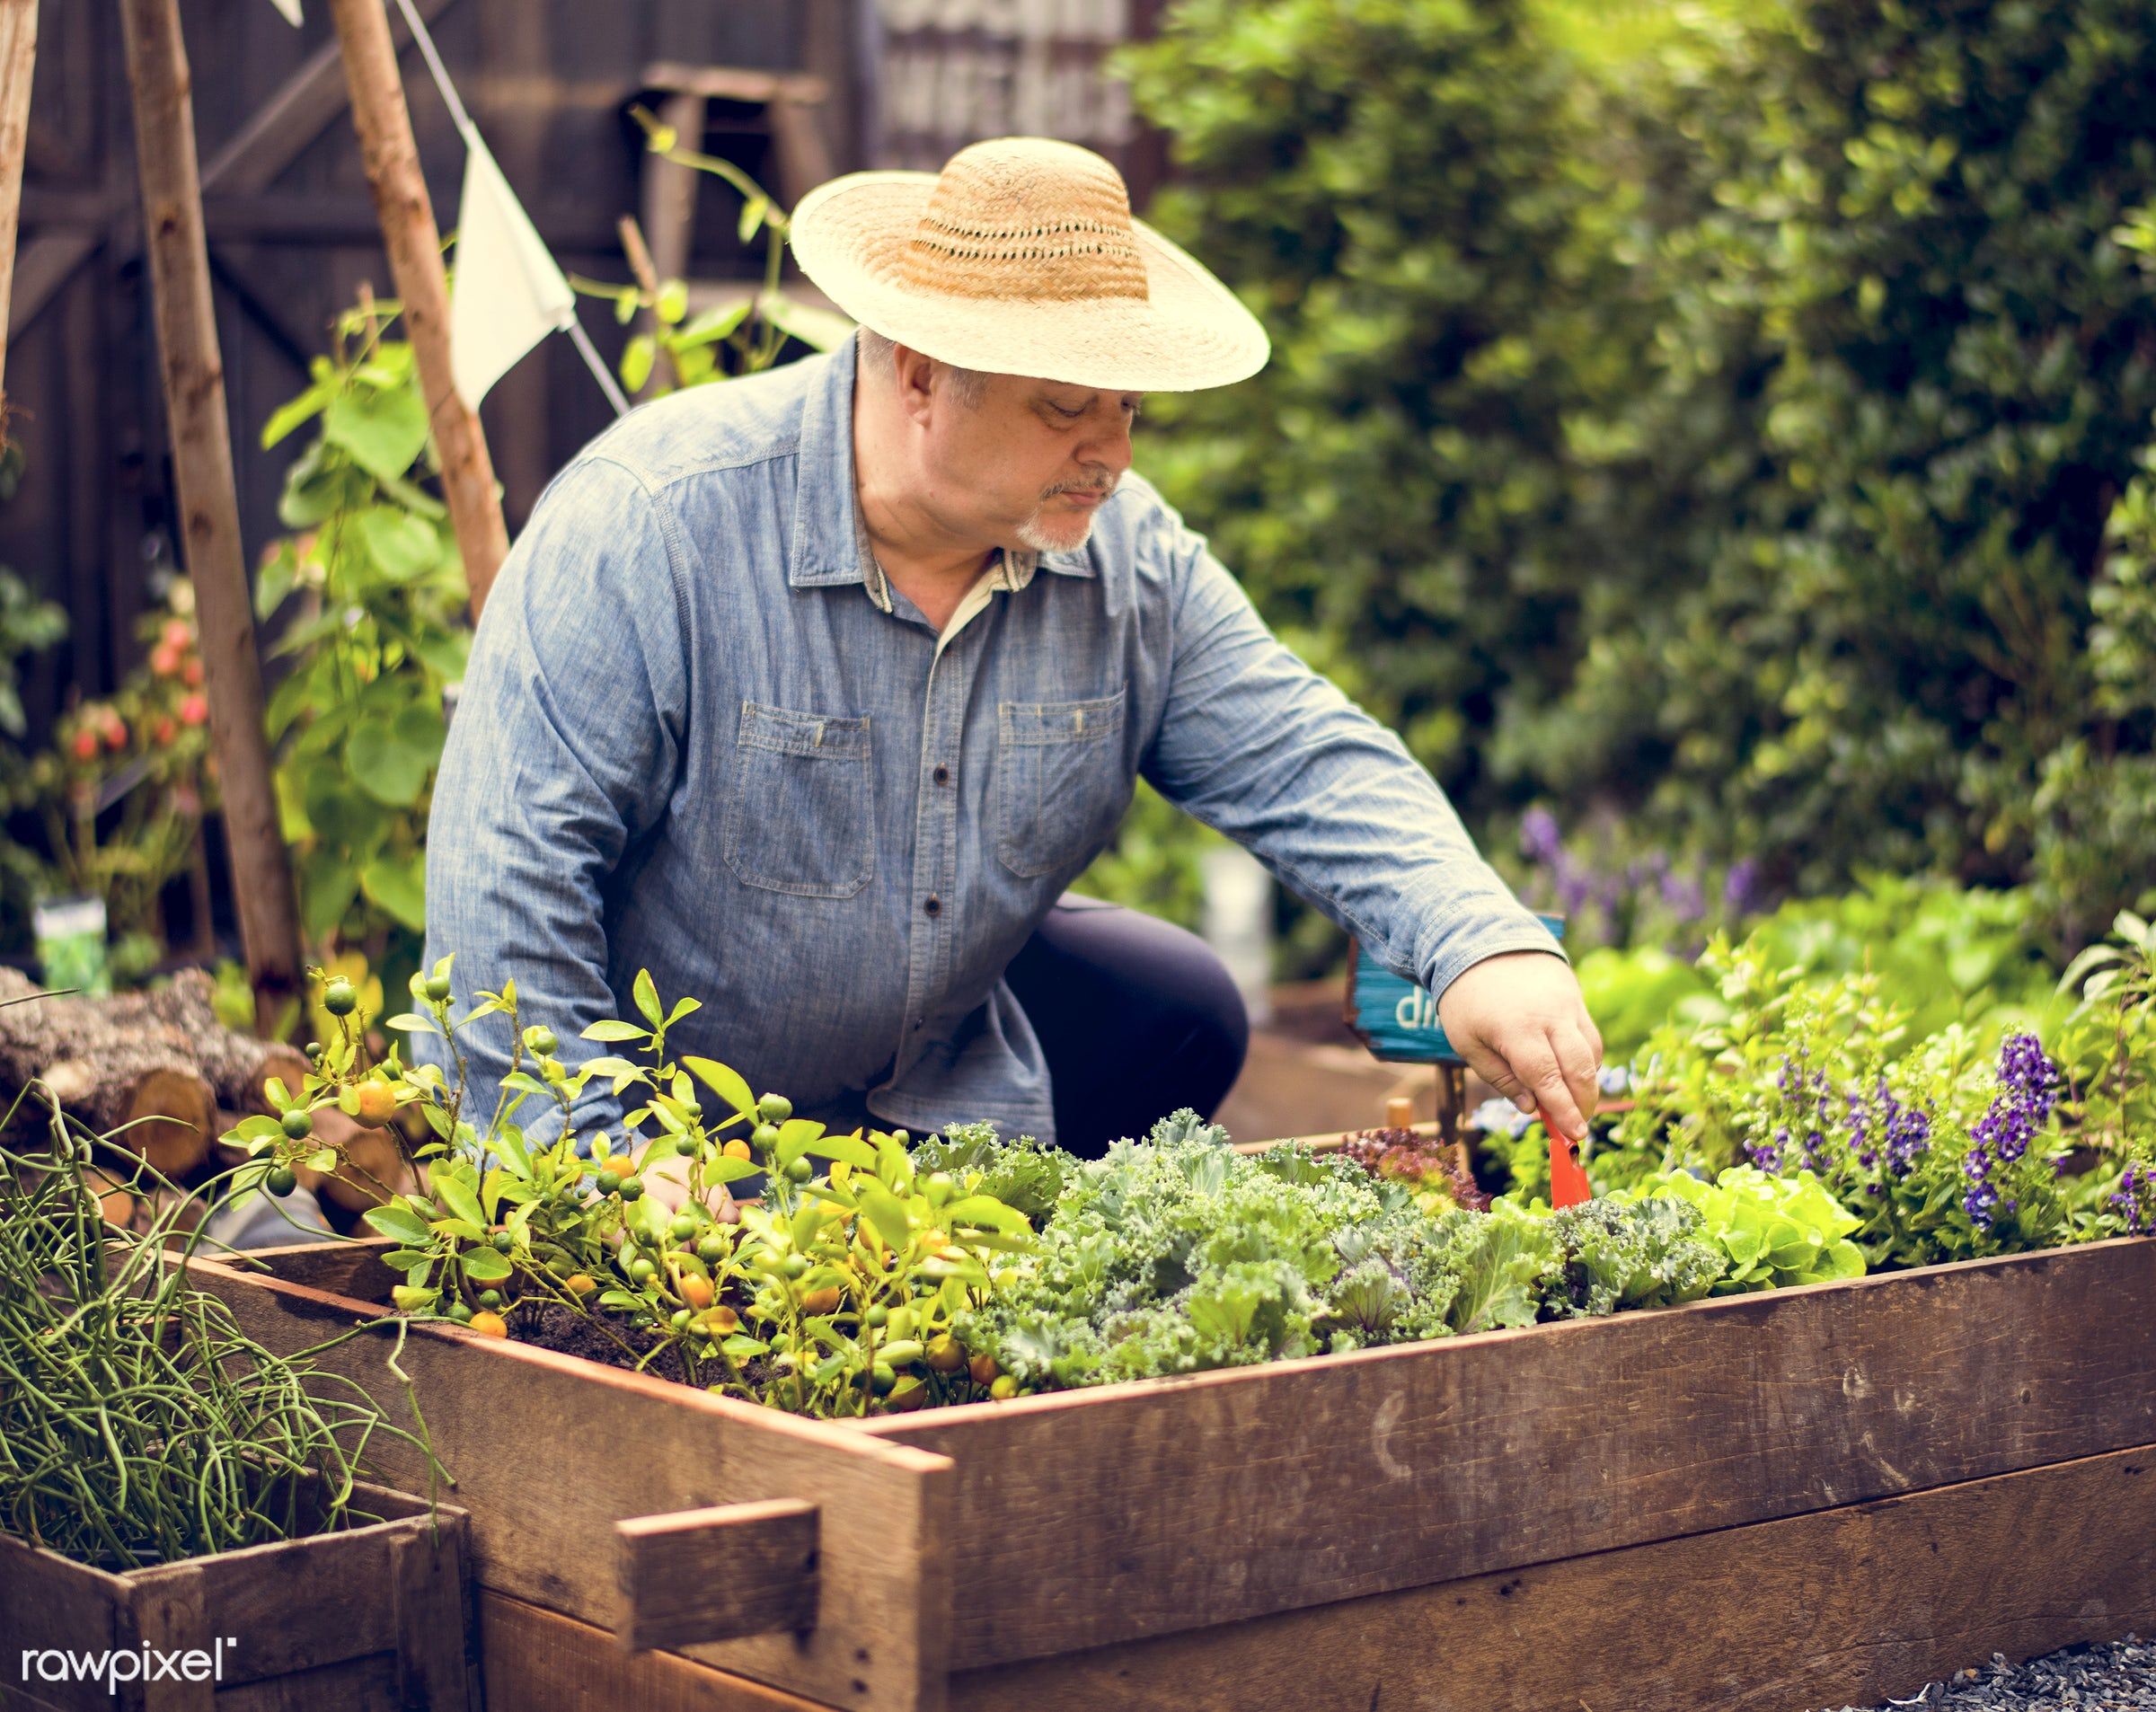 plant, salad, person, plants, leaves, spring, people, farm, hand, tree, farmer, hands, fresh, tree bed, dig, dirt, wooden...